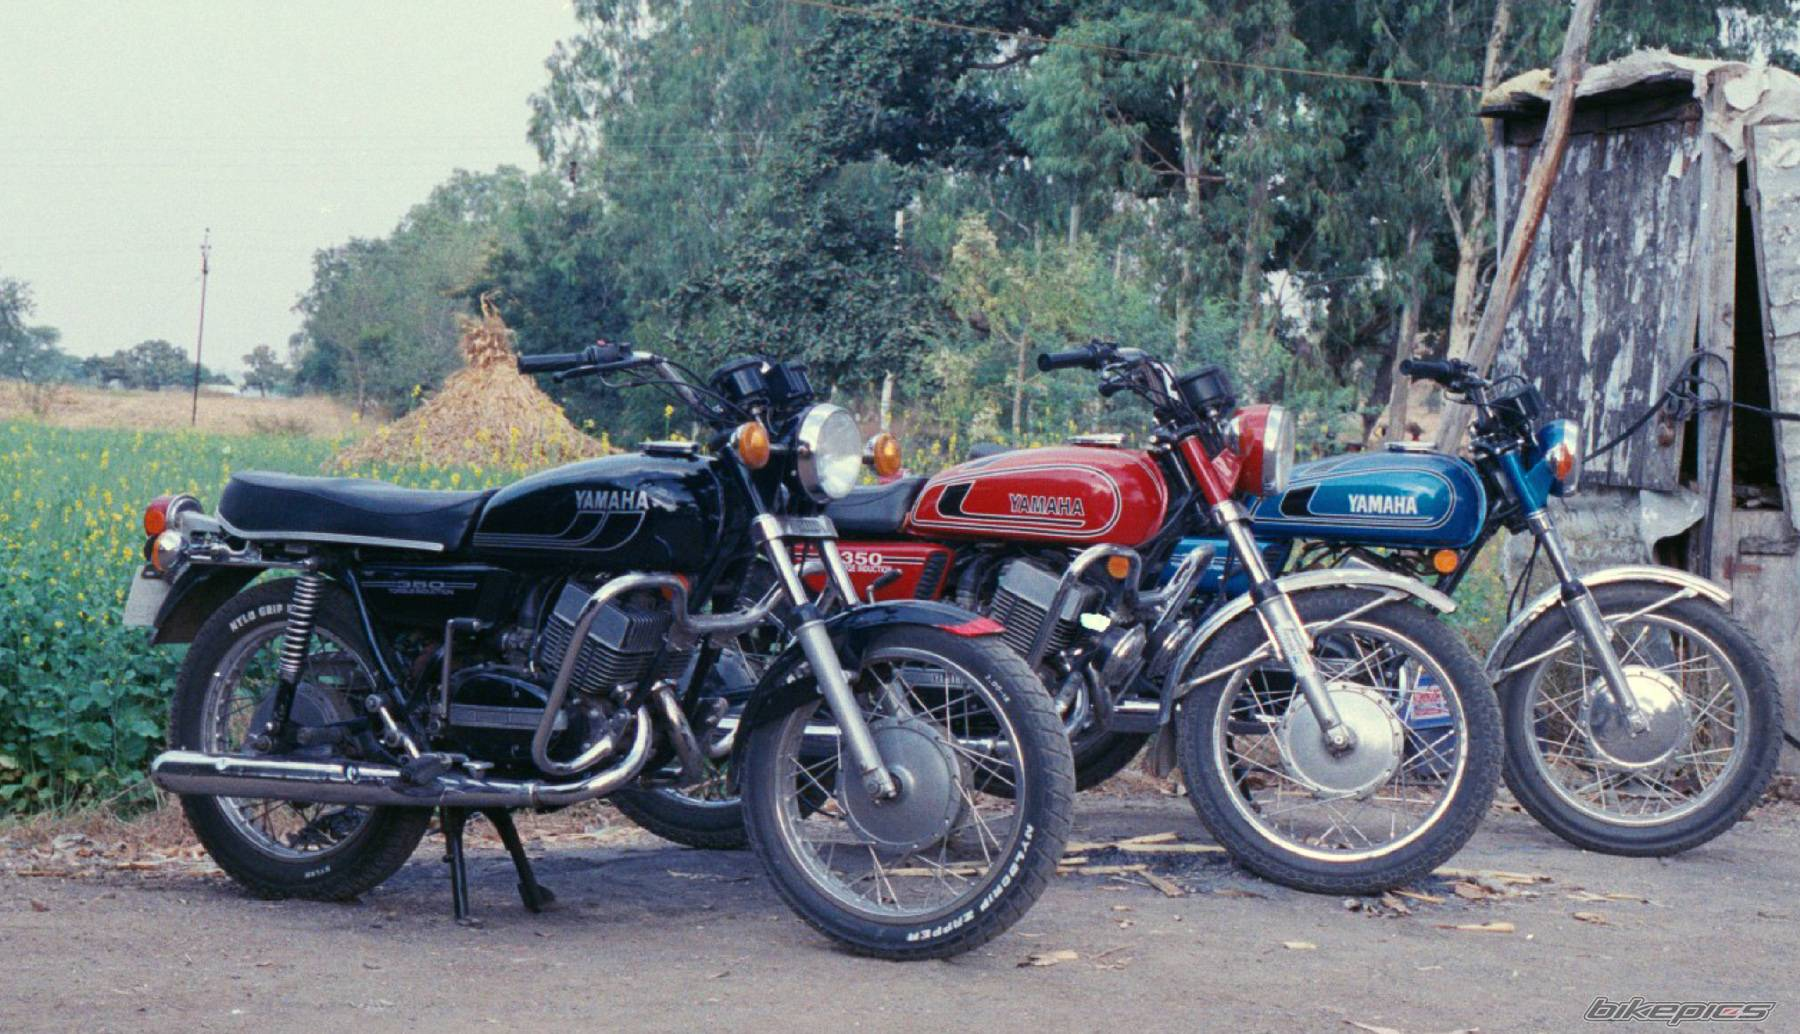 1983 YAMAHA RD 350 | Picture 413460 motorcycle photo